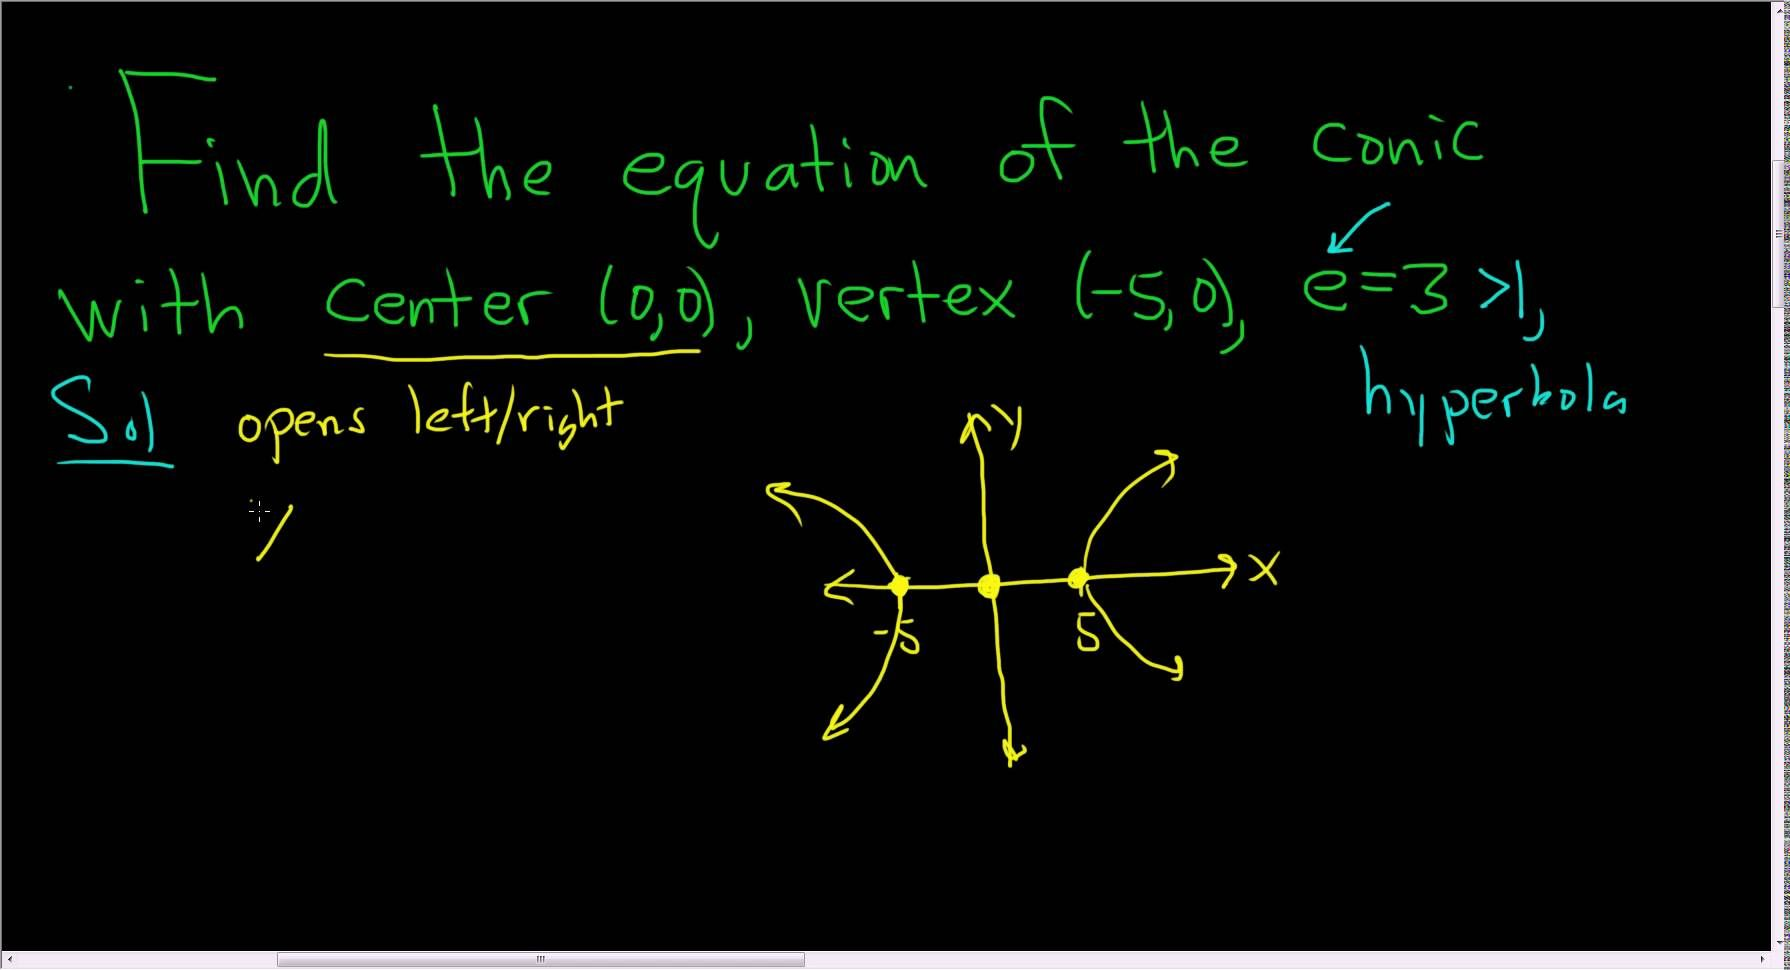 Find The Equation Of The Conic Given The Eccentricity